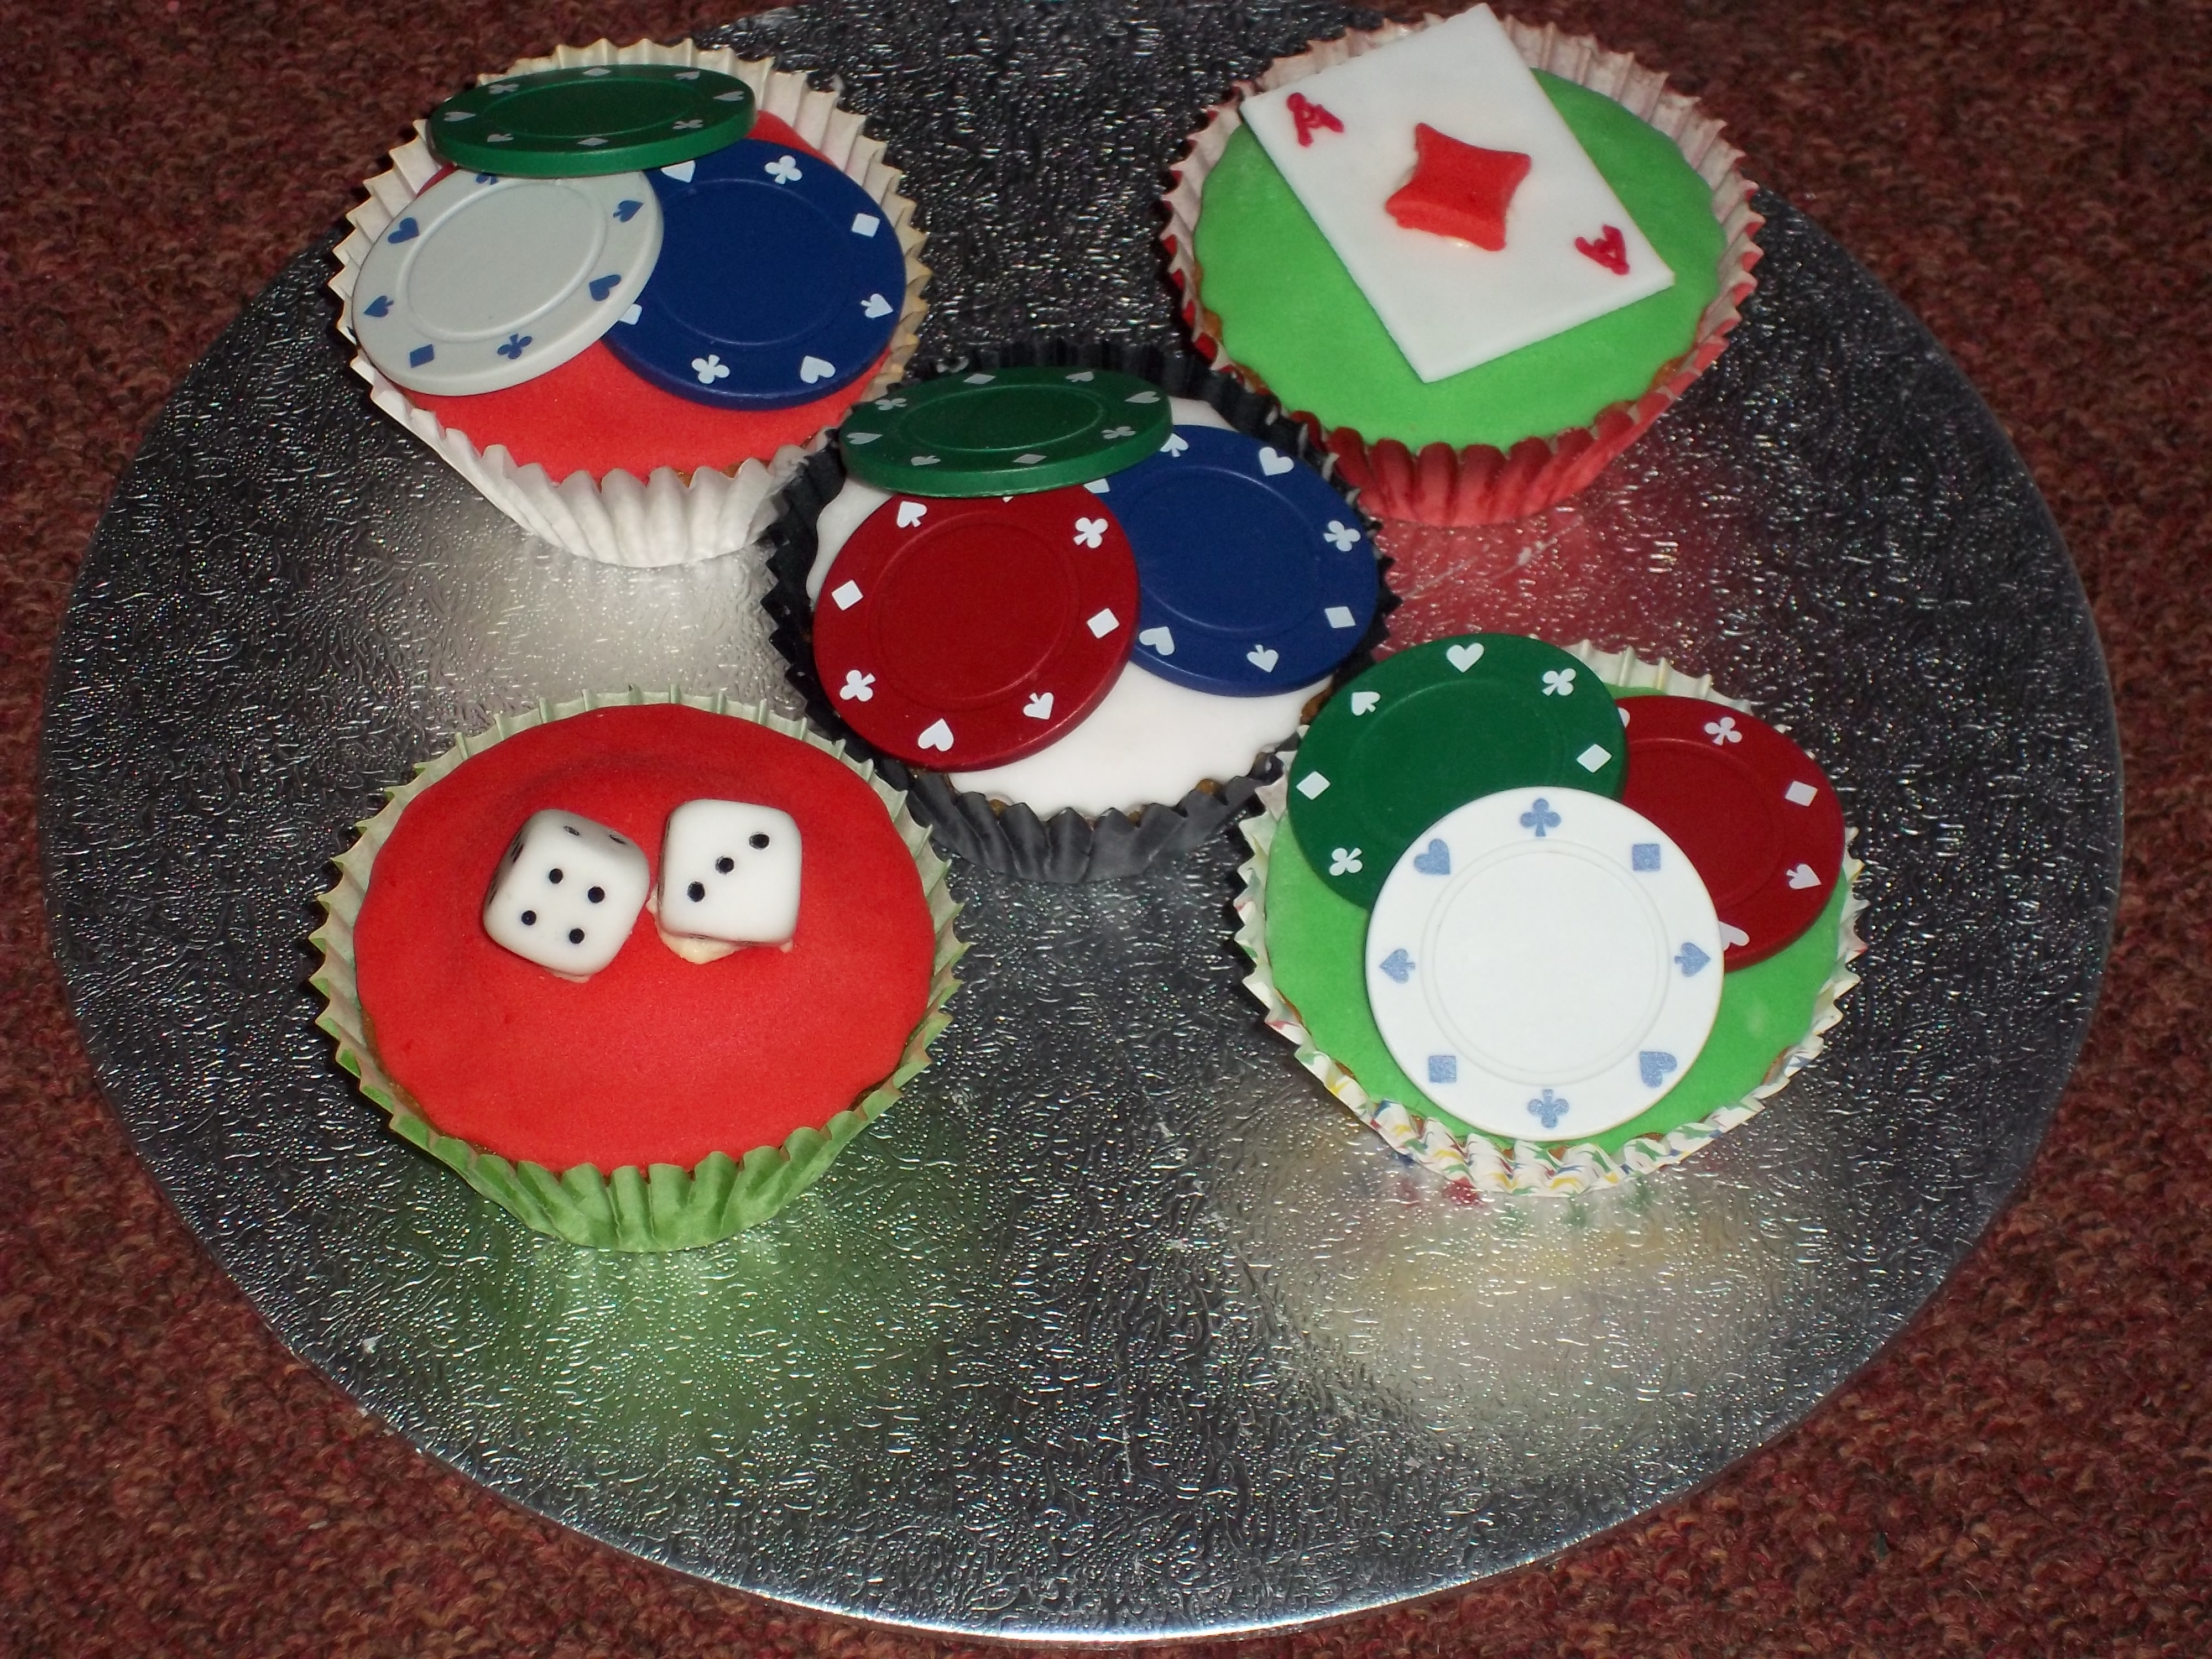 Casino Cakes 003 Jan S Occasional Cakes